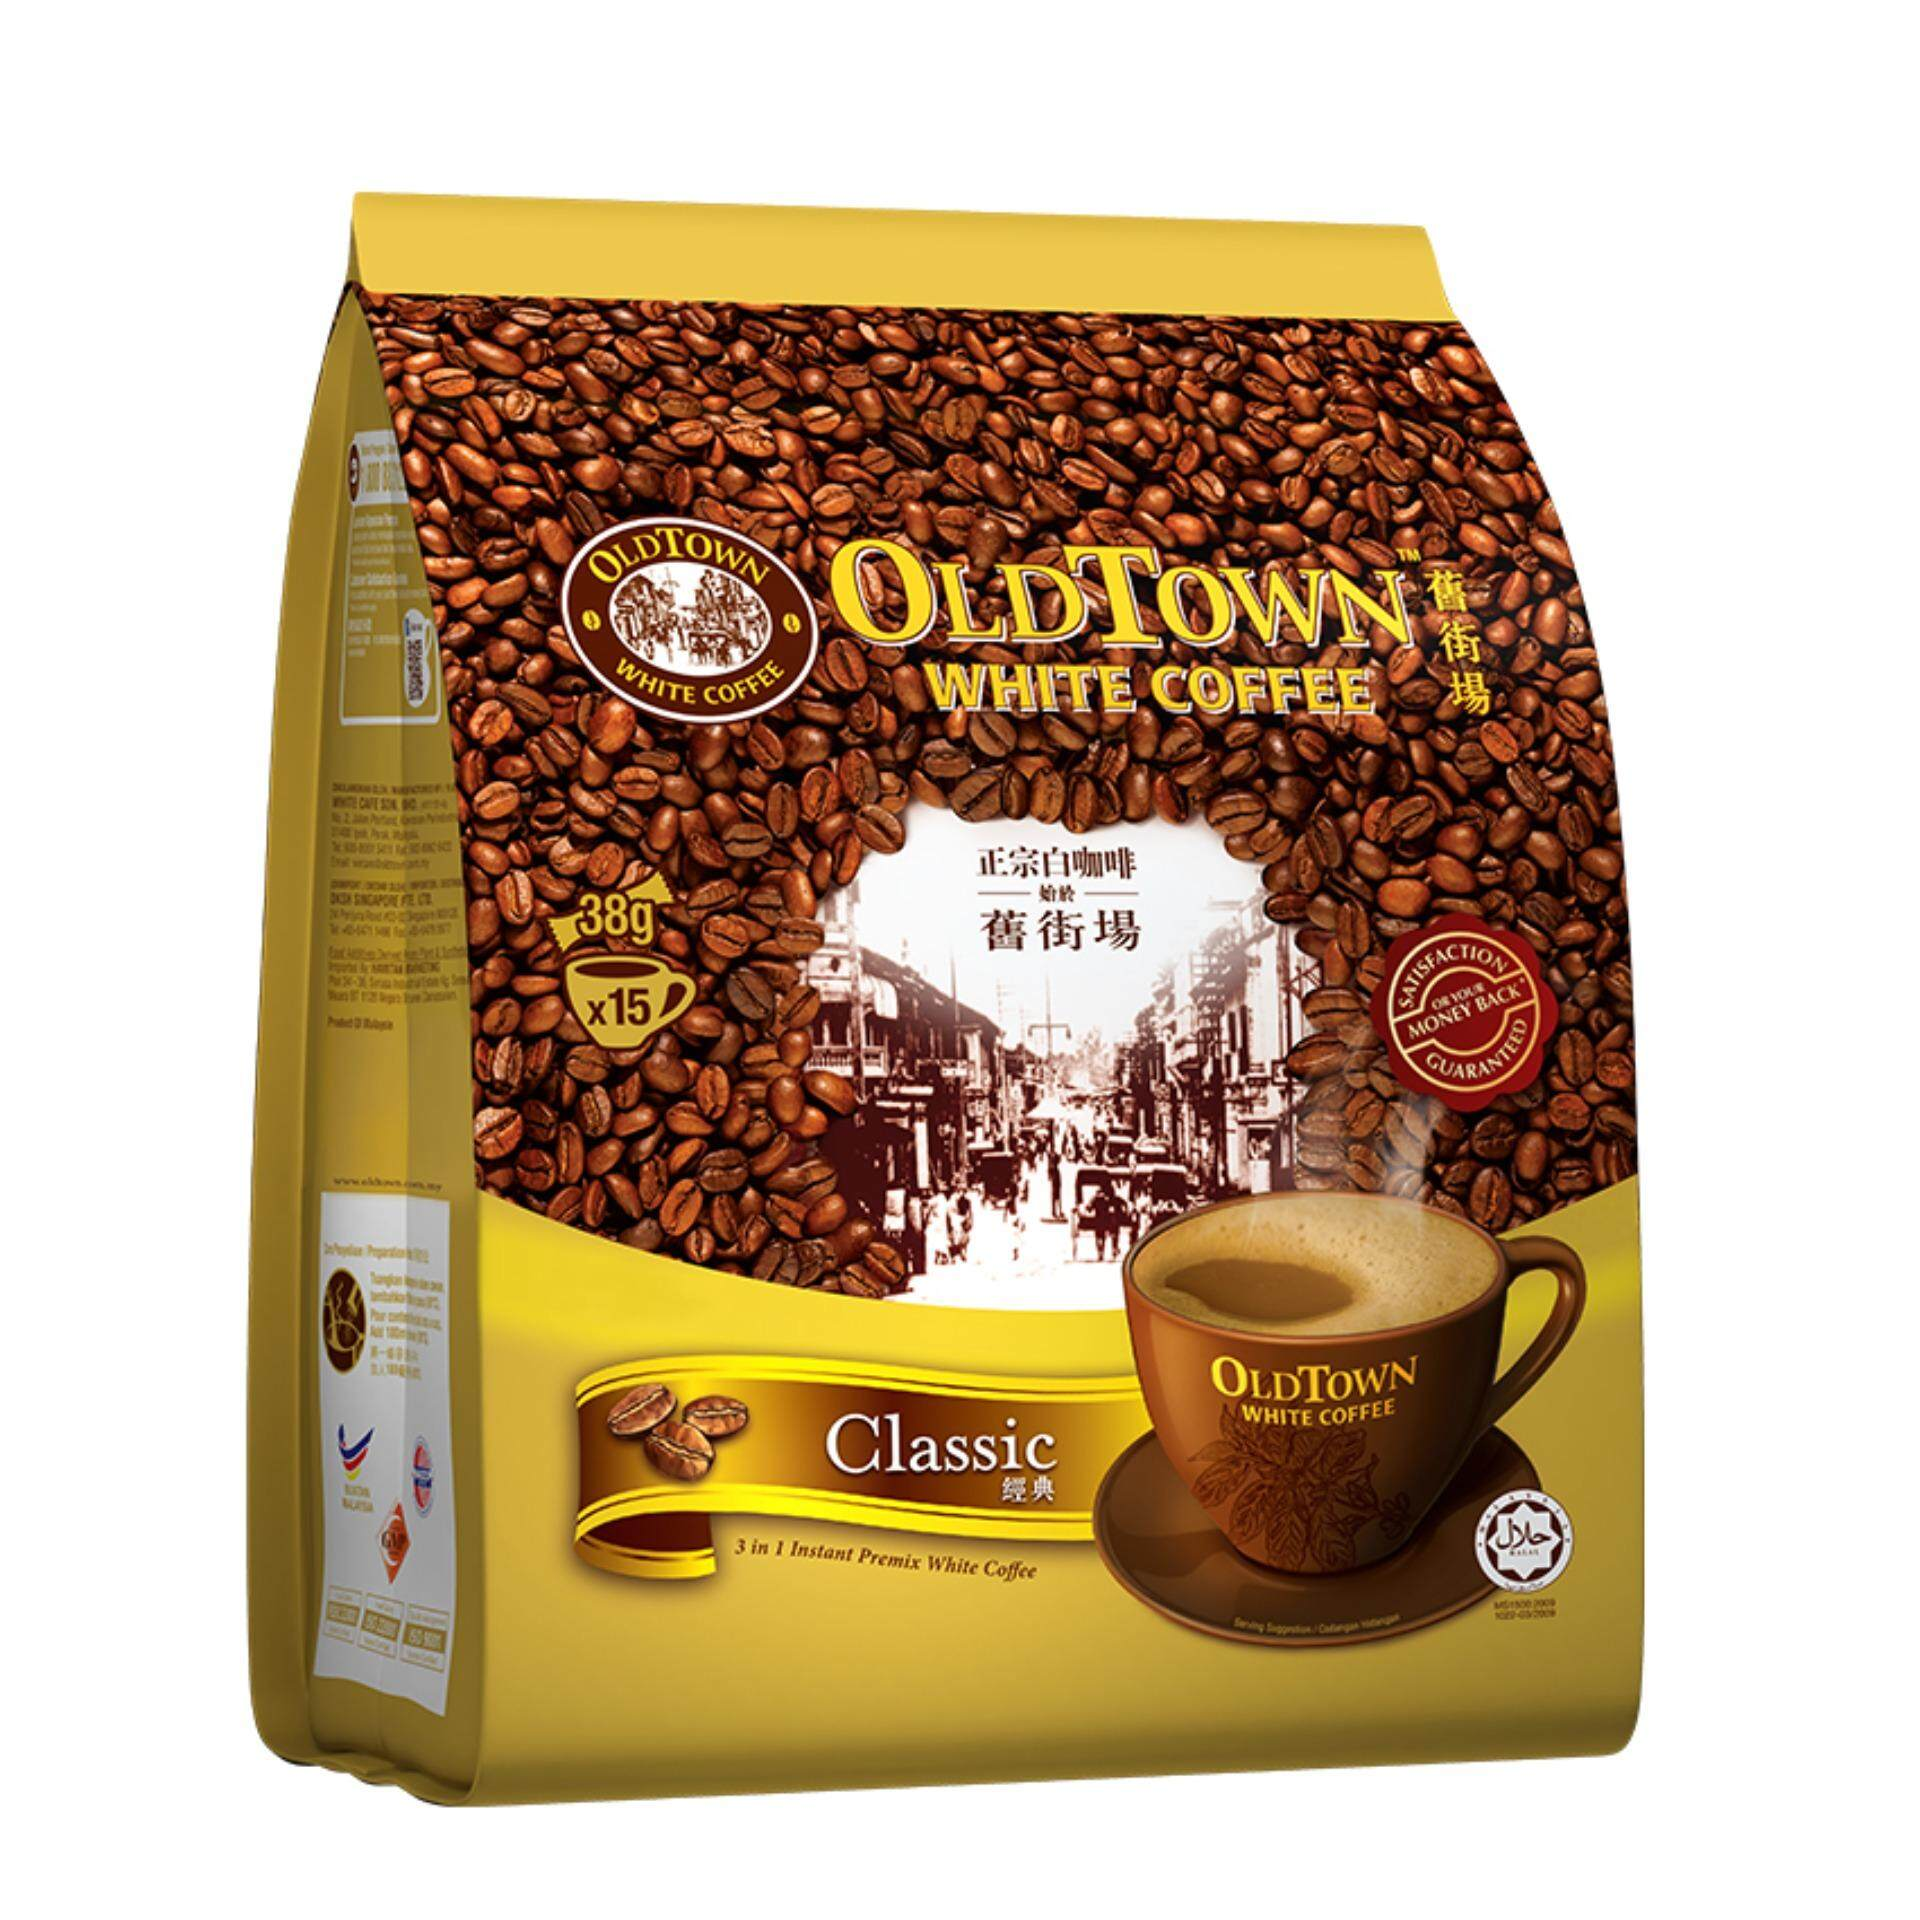 OLDTOWN White Coffee 3-in-1 Classic Instant Premix White Coffee (15'S X 1 Pack)